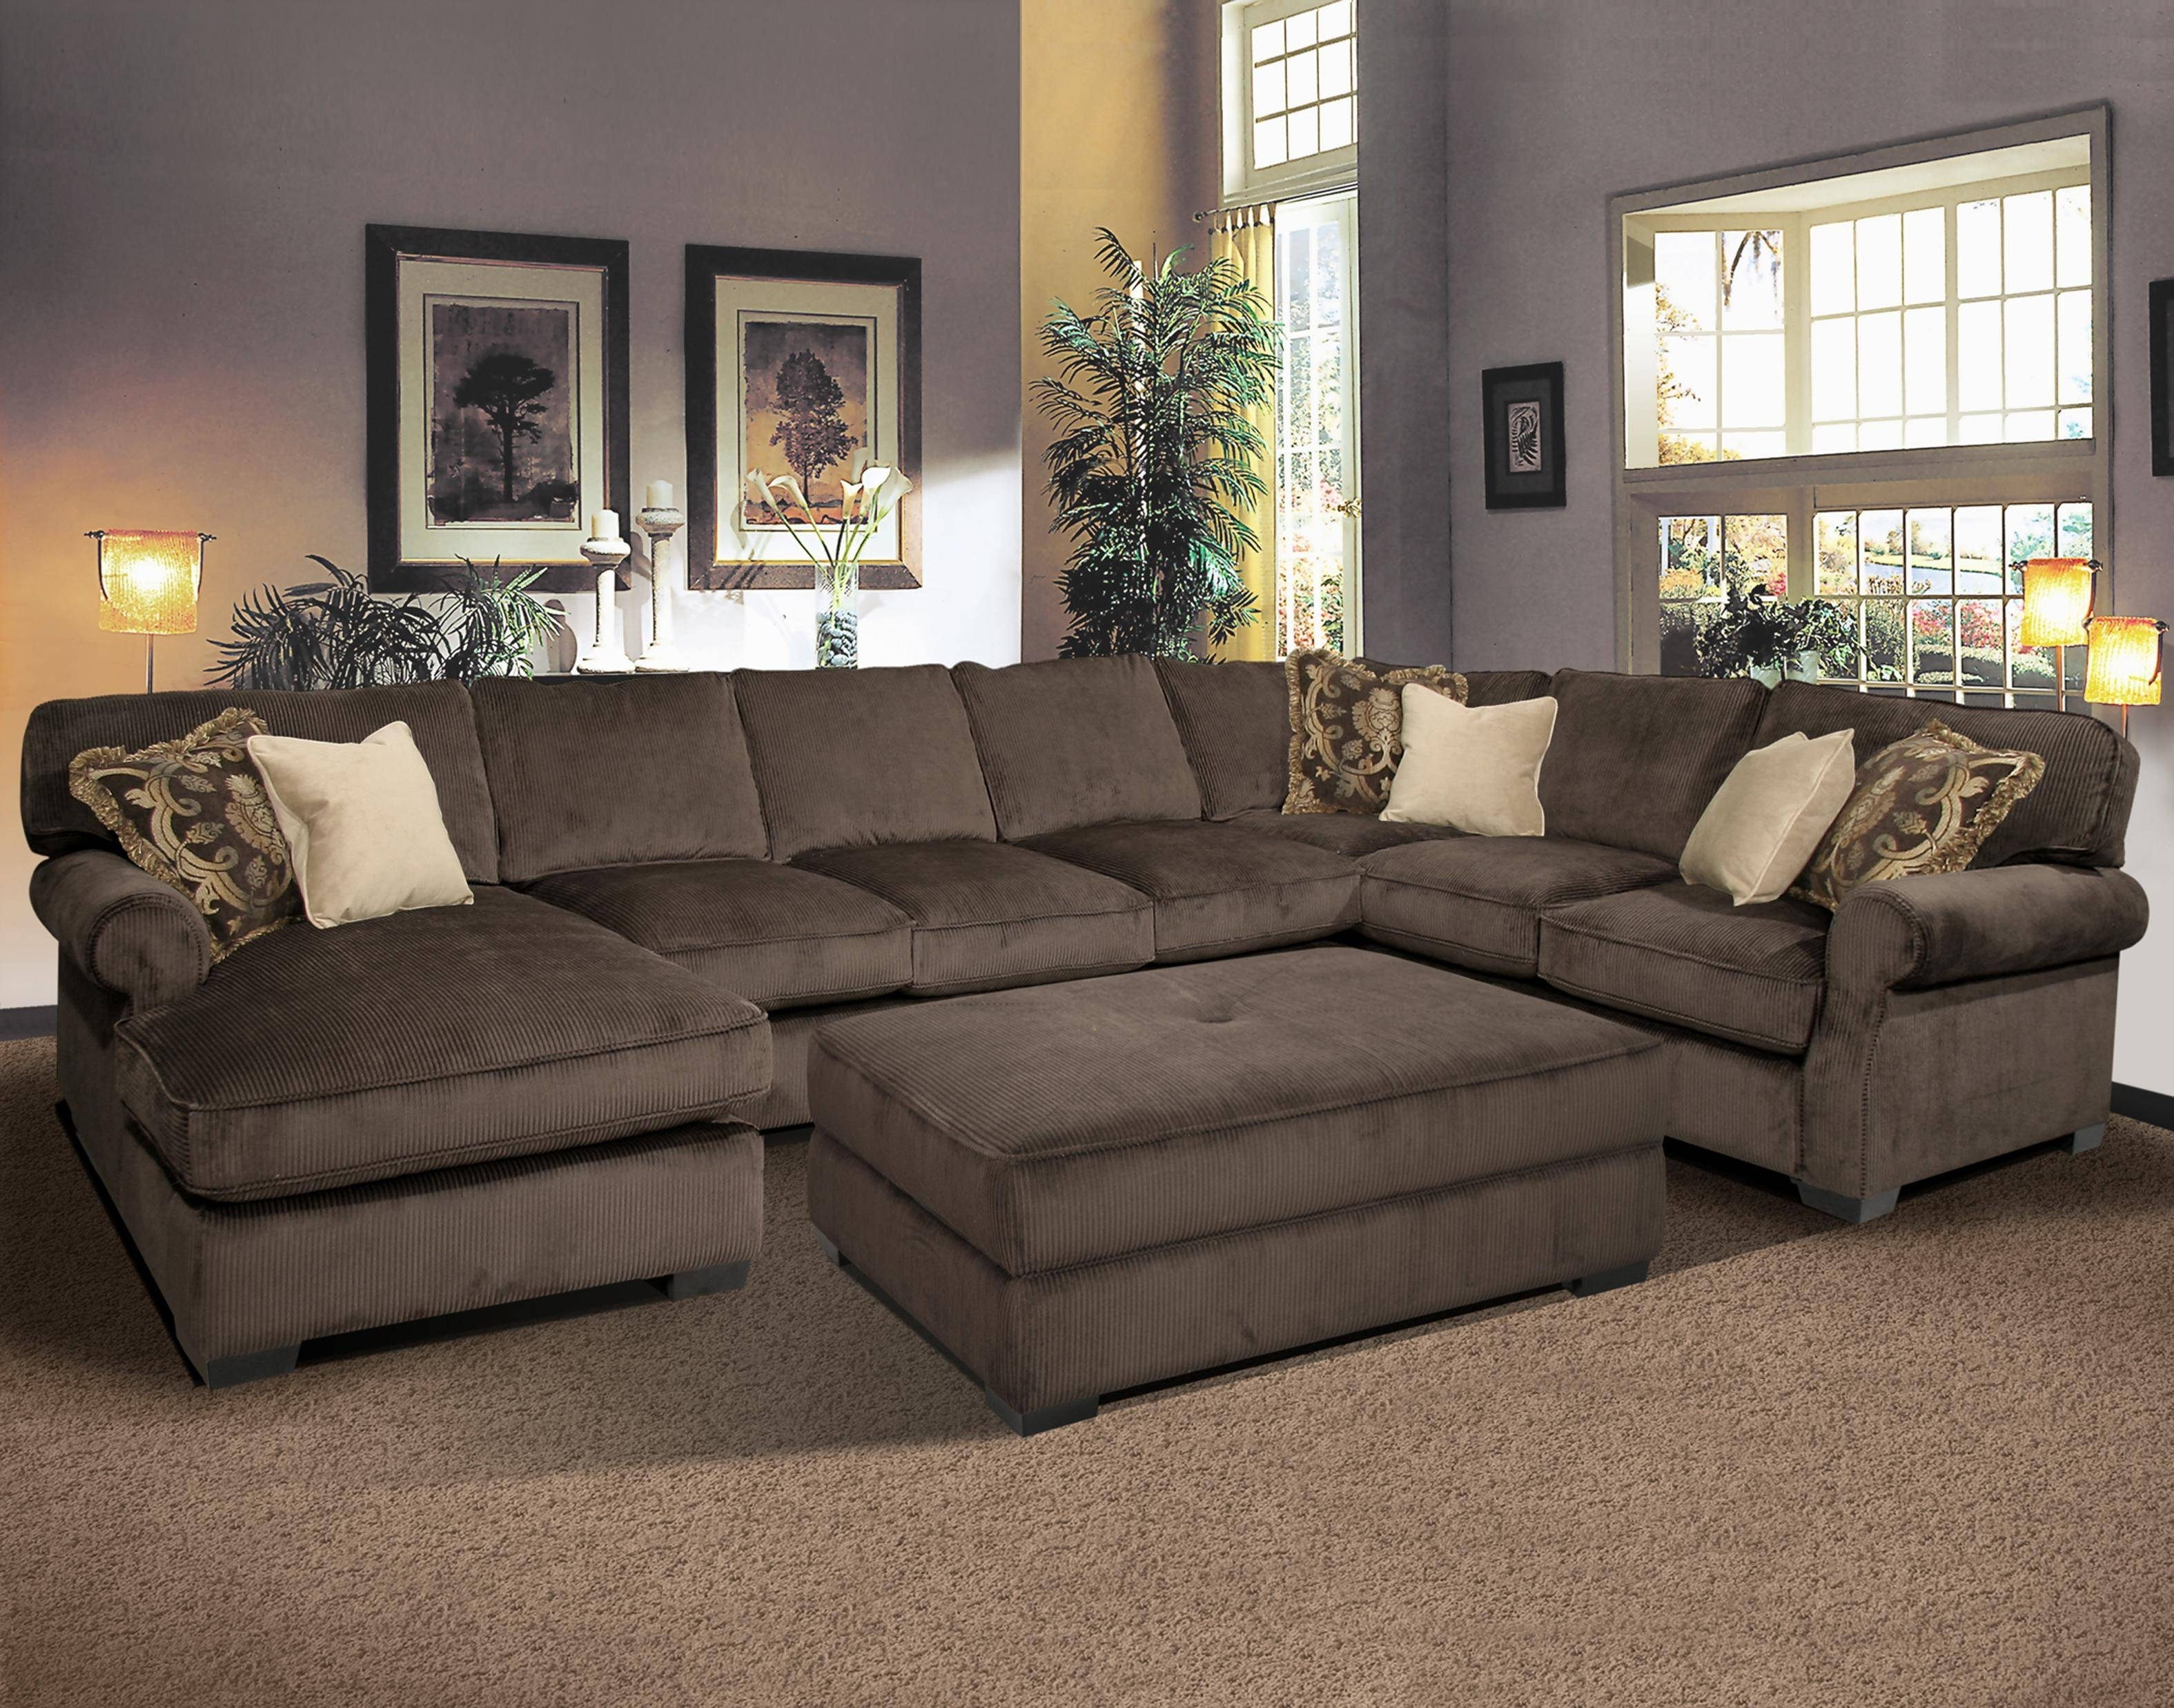 Sectional Sofas Austin Couches Texas Tx Leather Sofa Cheap Sleeper for Austin Sectional Sofas (Image 5 of 10)